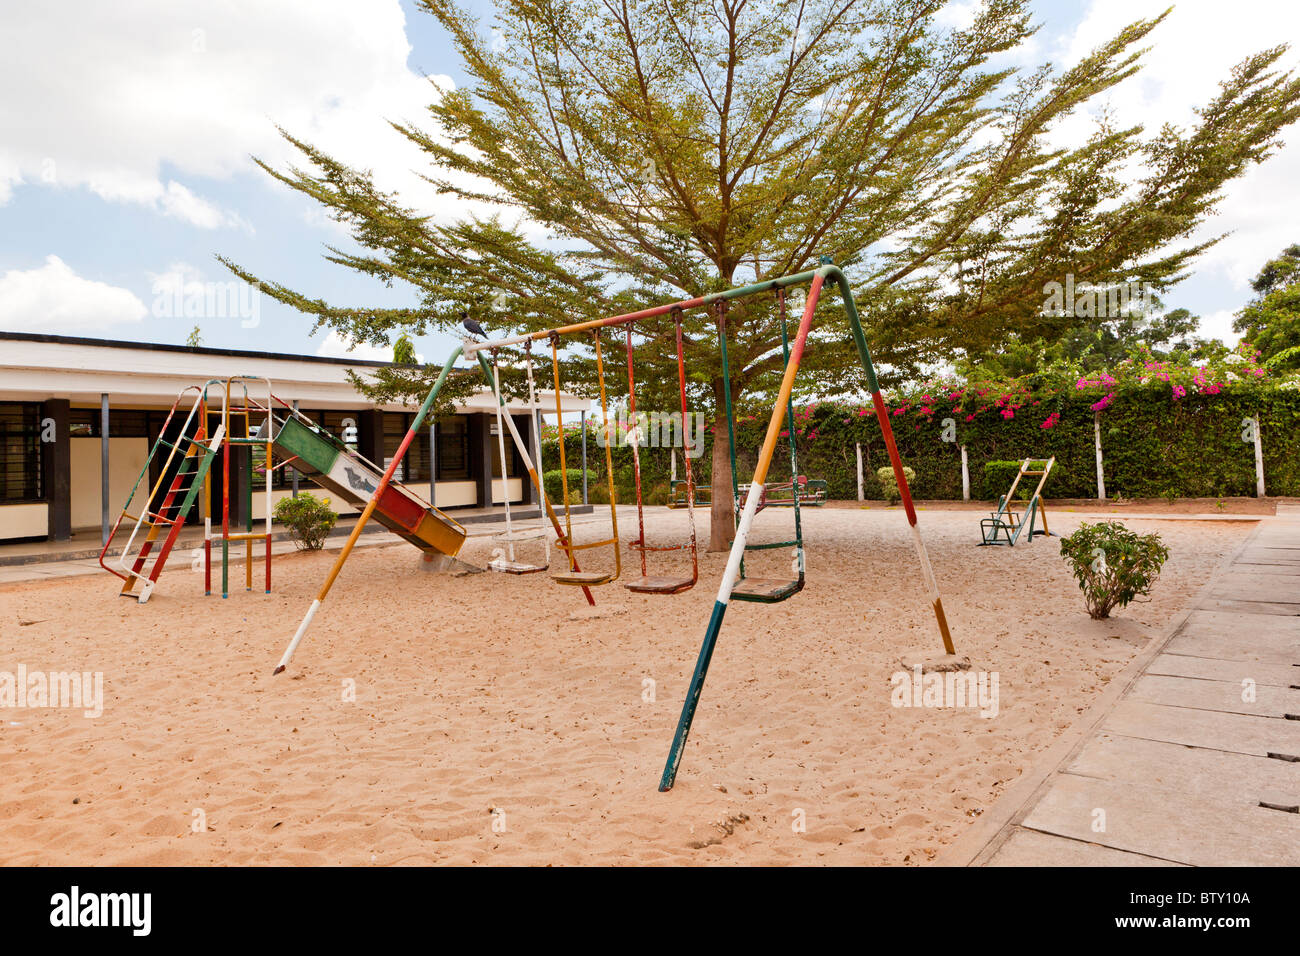 A deserted playground at a primary school. Dar es Salaam Tanzania. - Stock Image